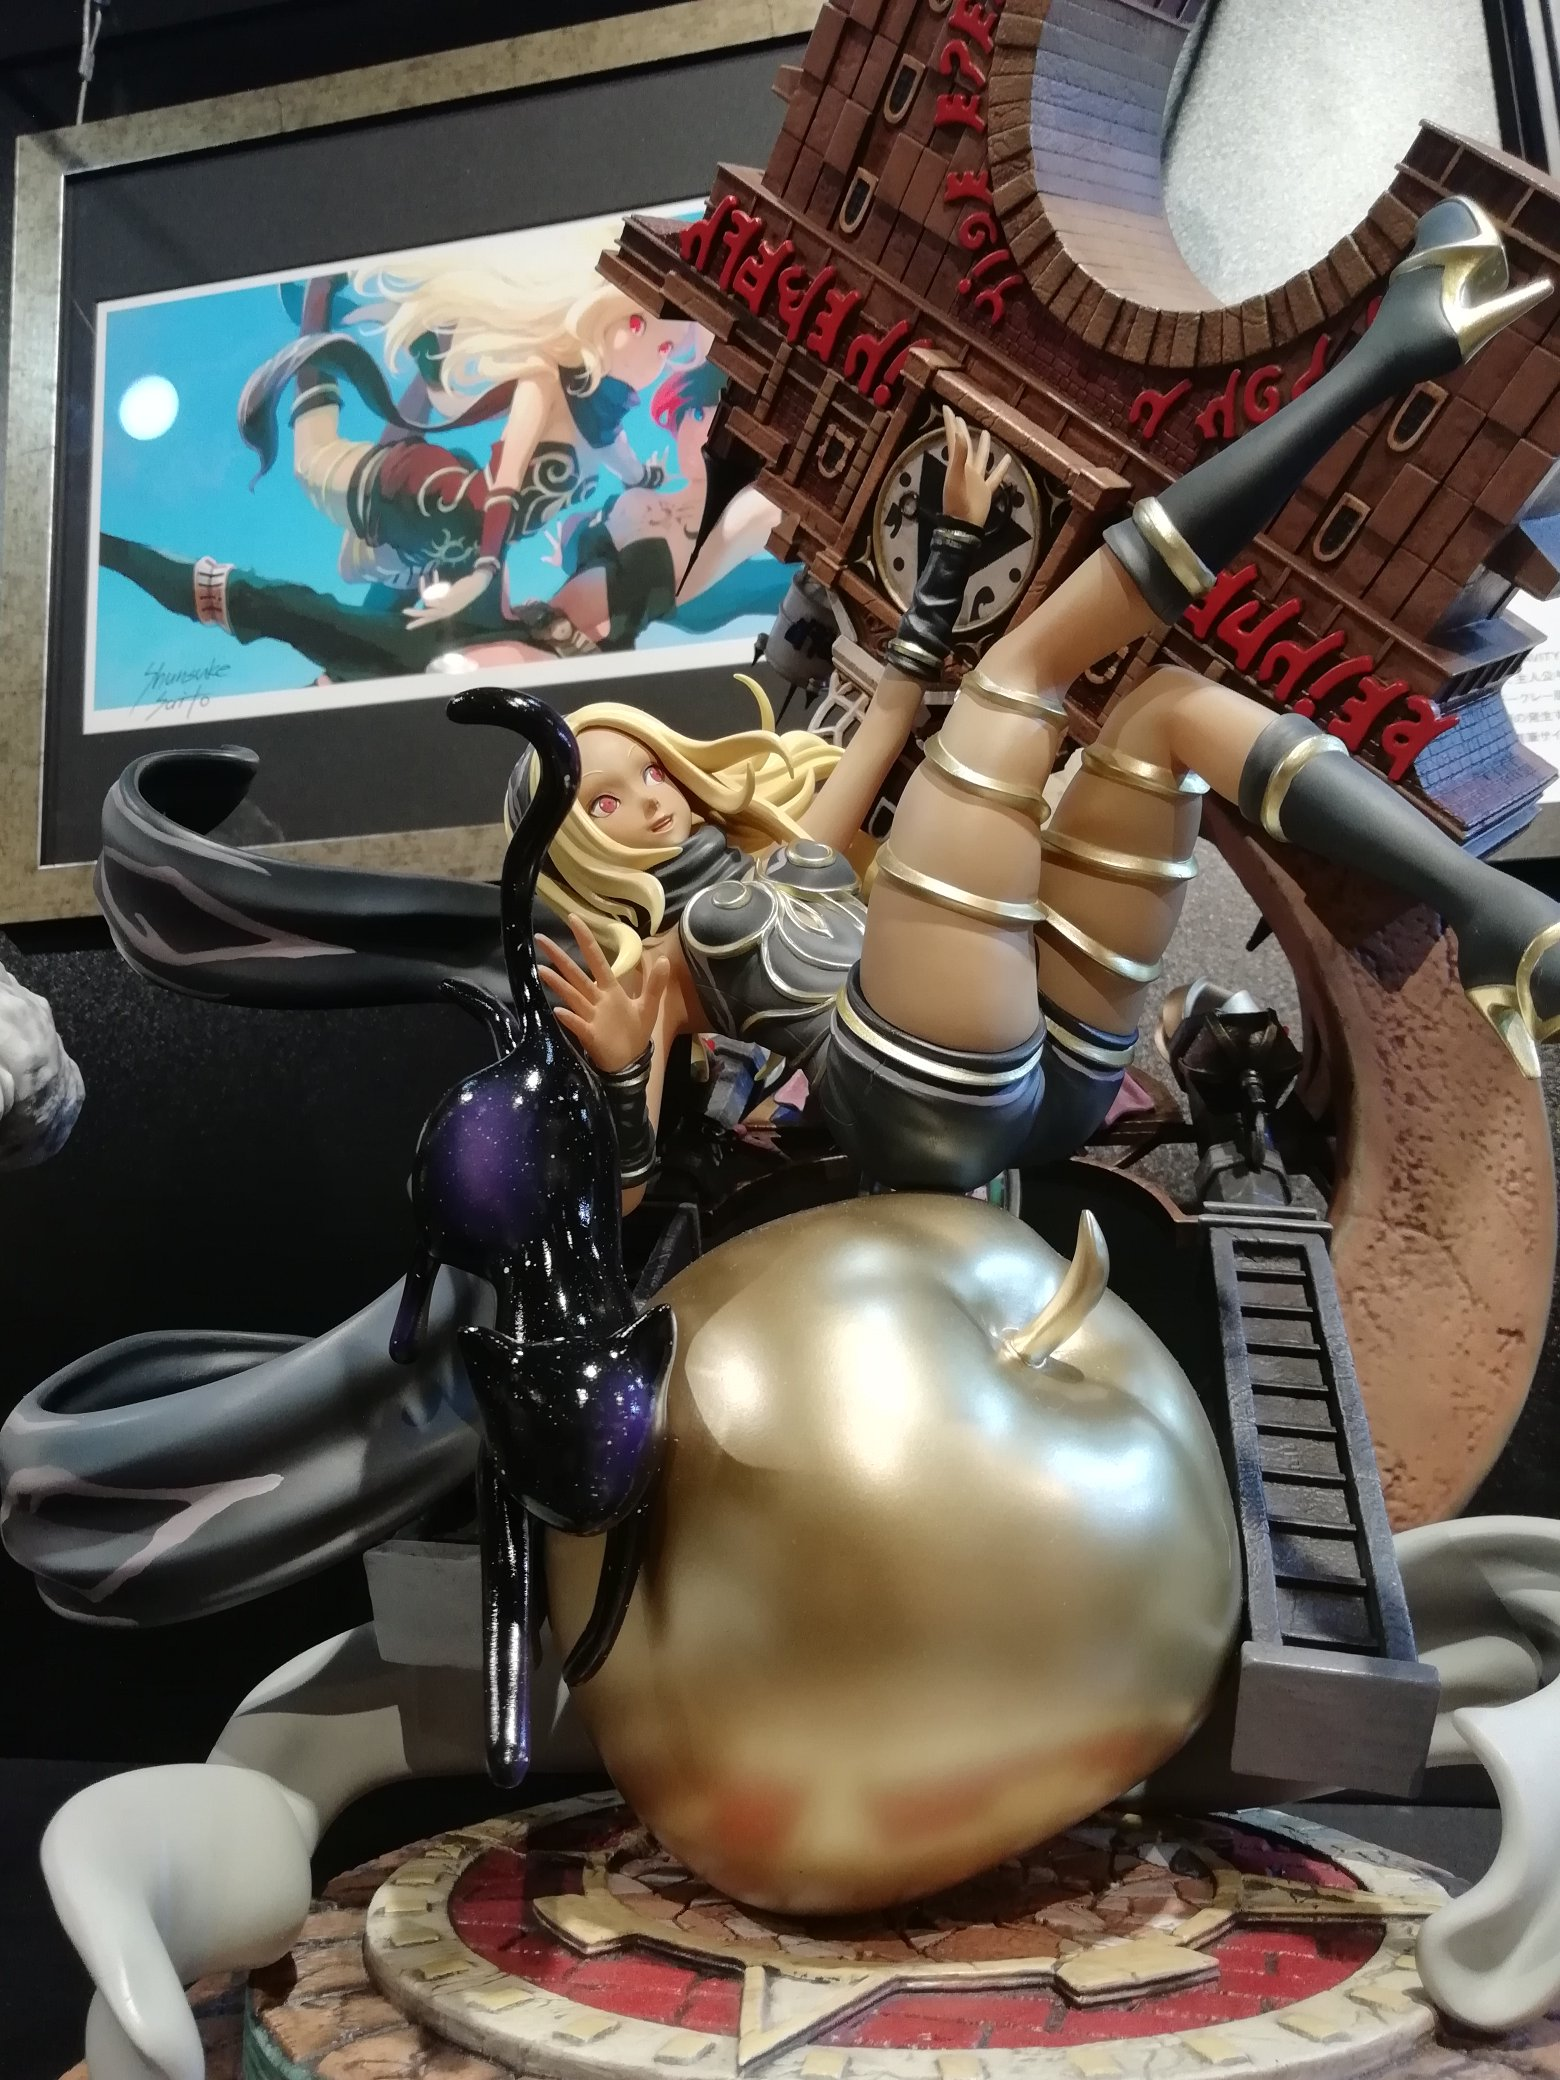 Prime 1 Studio's Kat Statue shown an their museum.